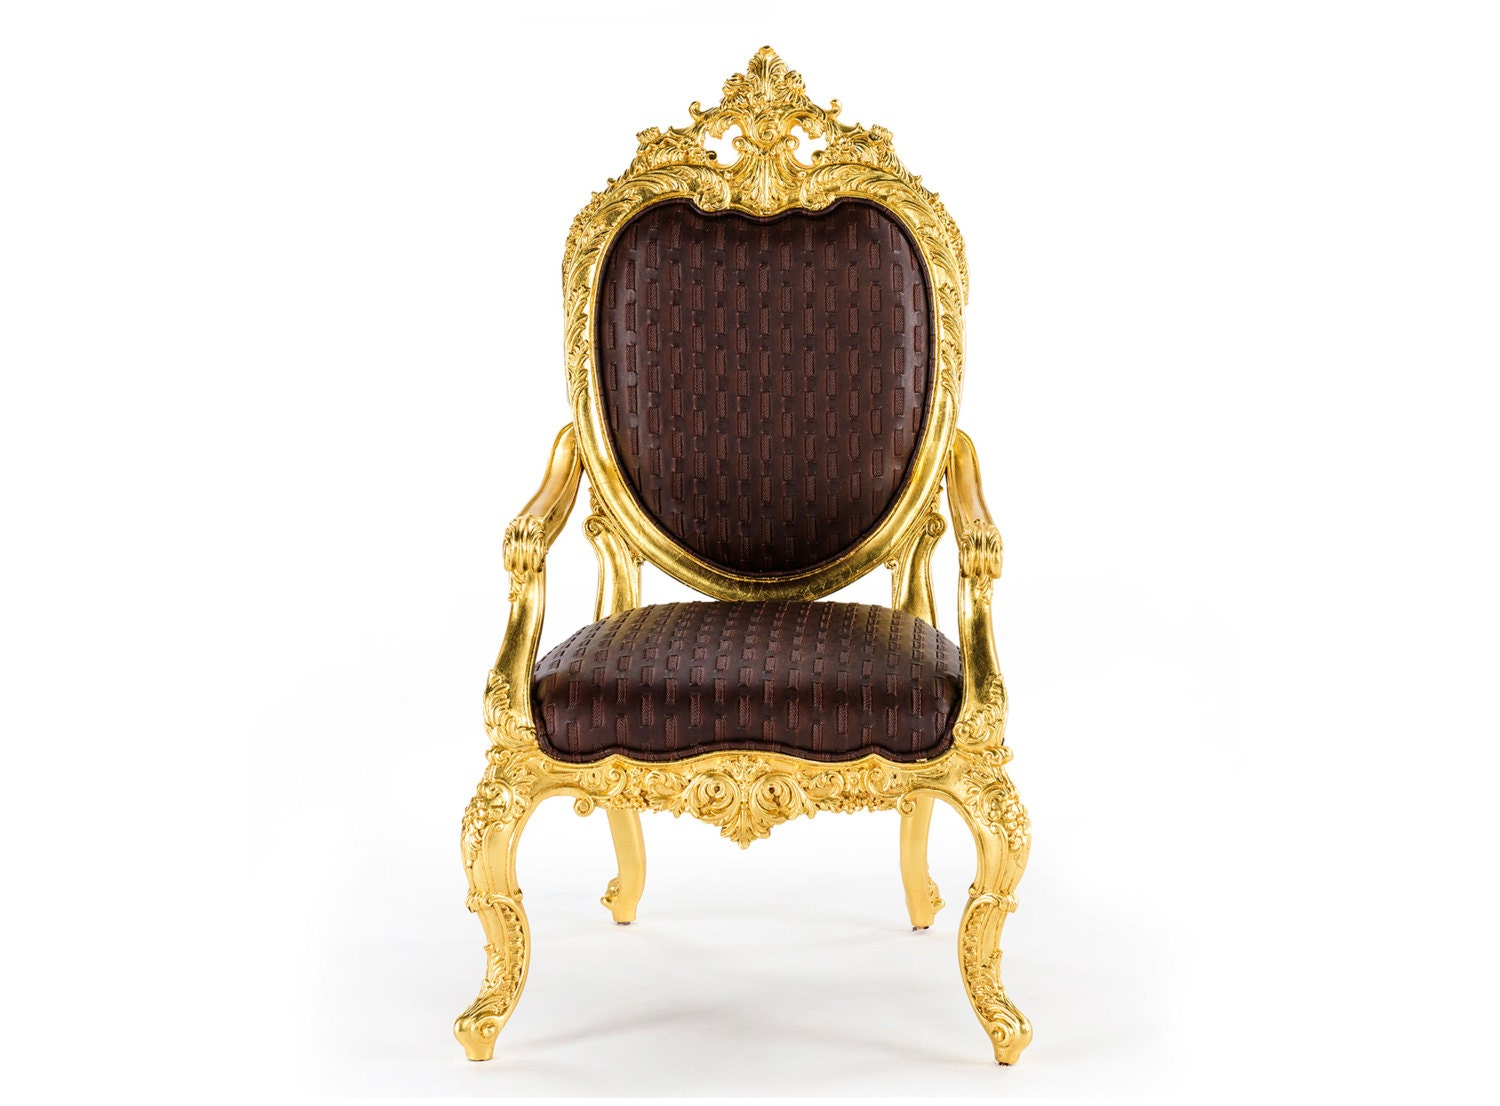 Magnificent oval back gold gilt rococo chair baroque throne for What is the other name for the rococo style